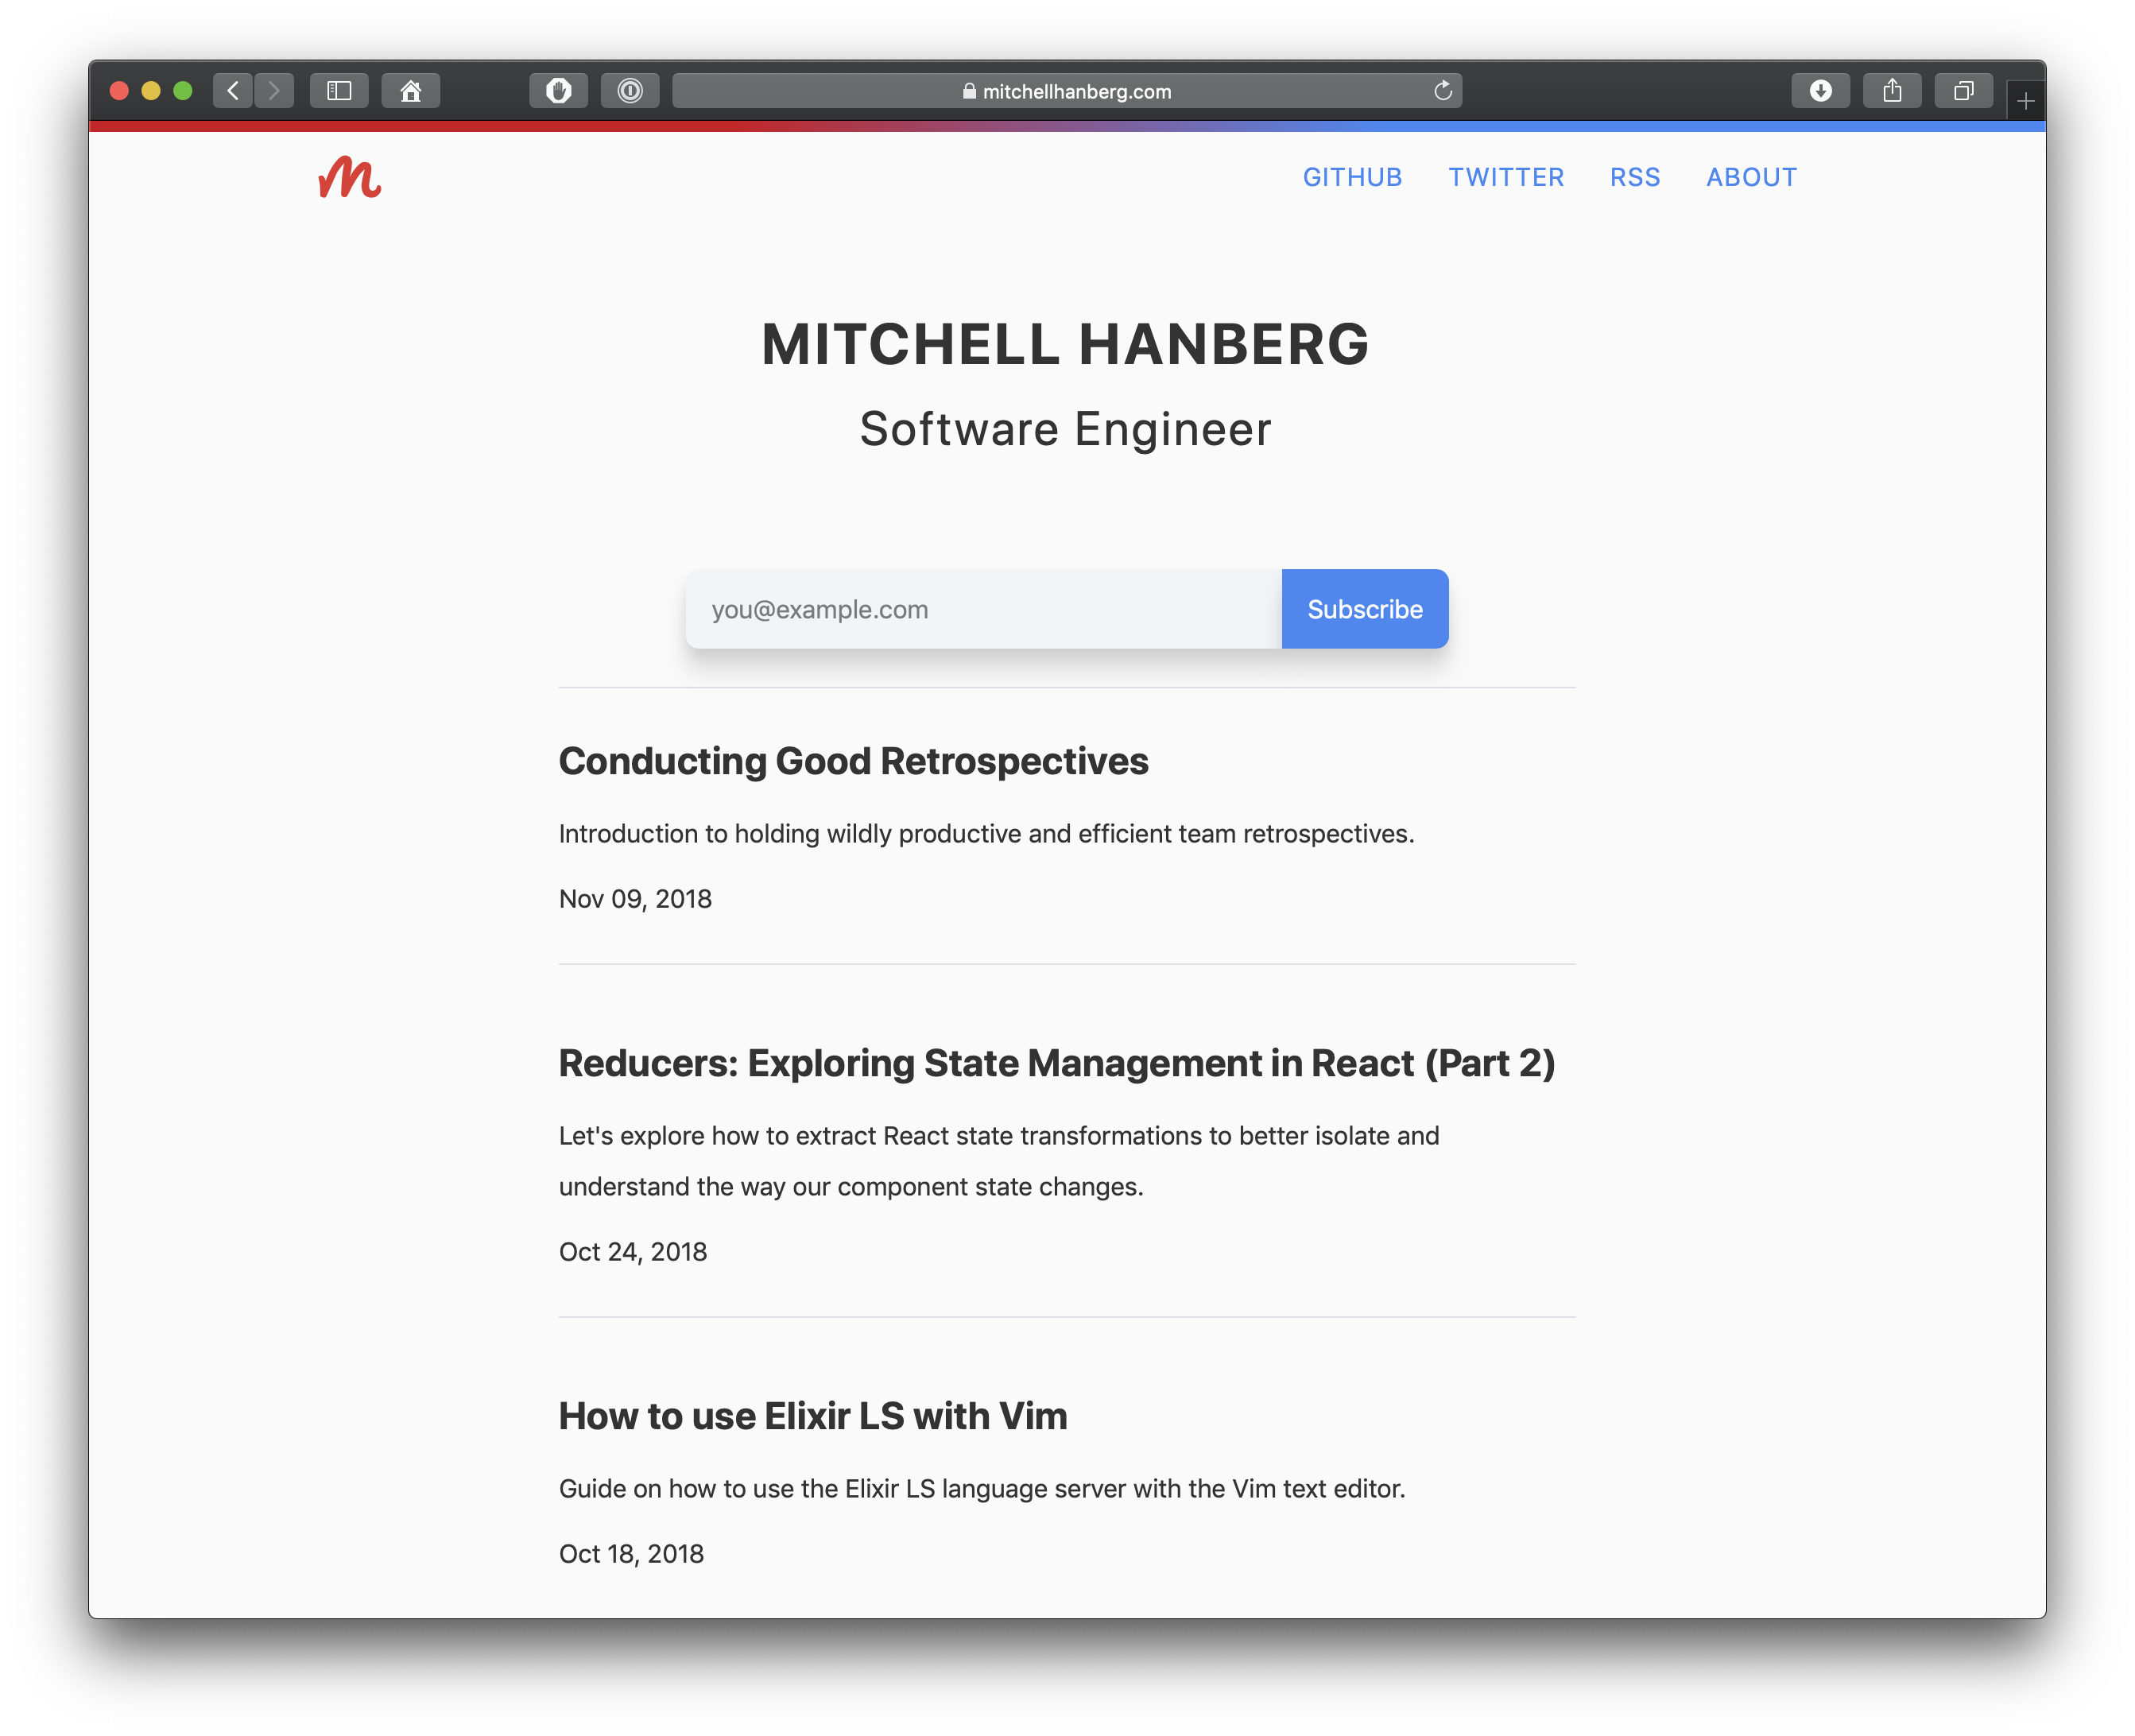 Screenshot of the homepage of mitchellhanberg.com